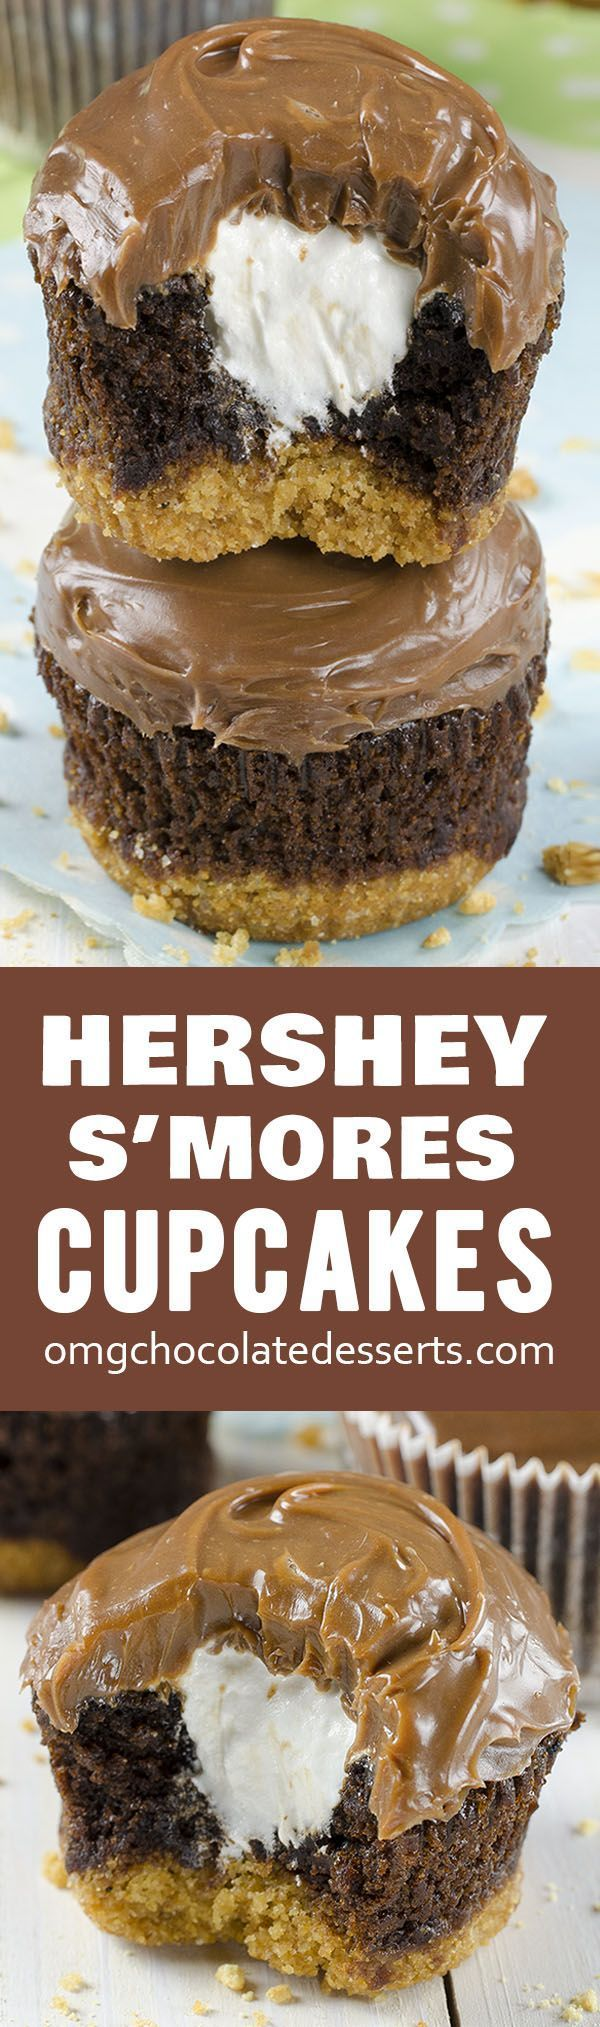 Hershey's S'mores Cupcakes – delicious chocolate cupcakes with a  graham cracker crust, filled with light and fluffy marshmallow filling. #desertsfoodrecipes